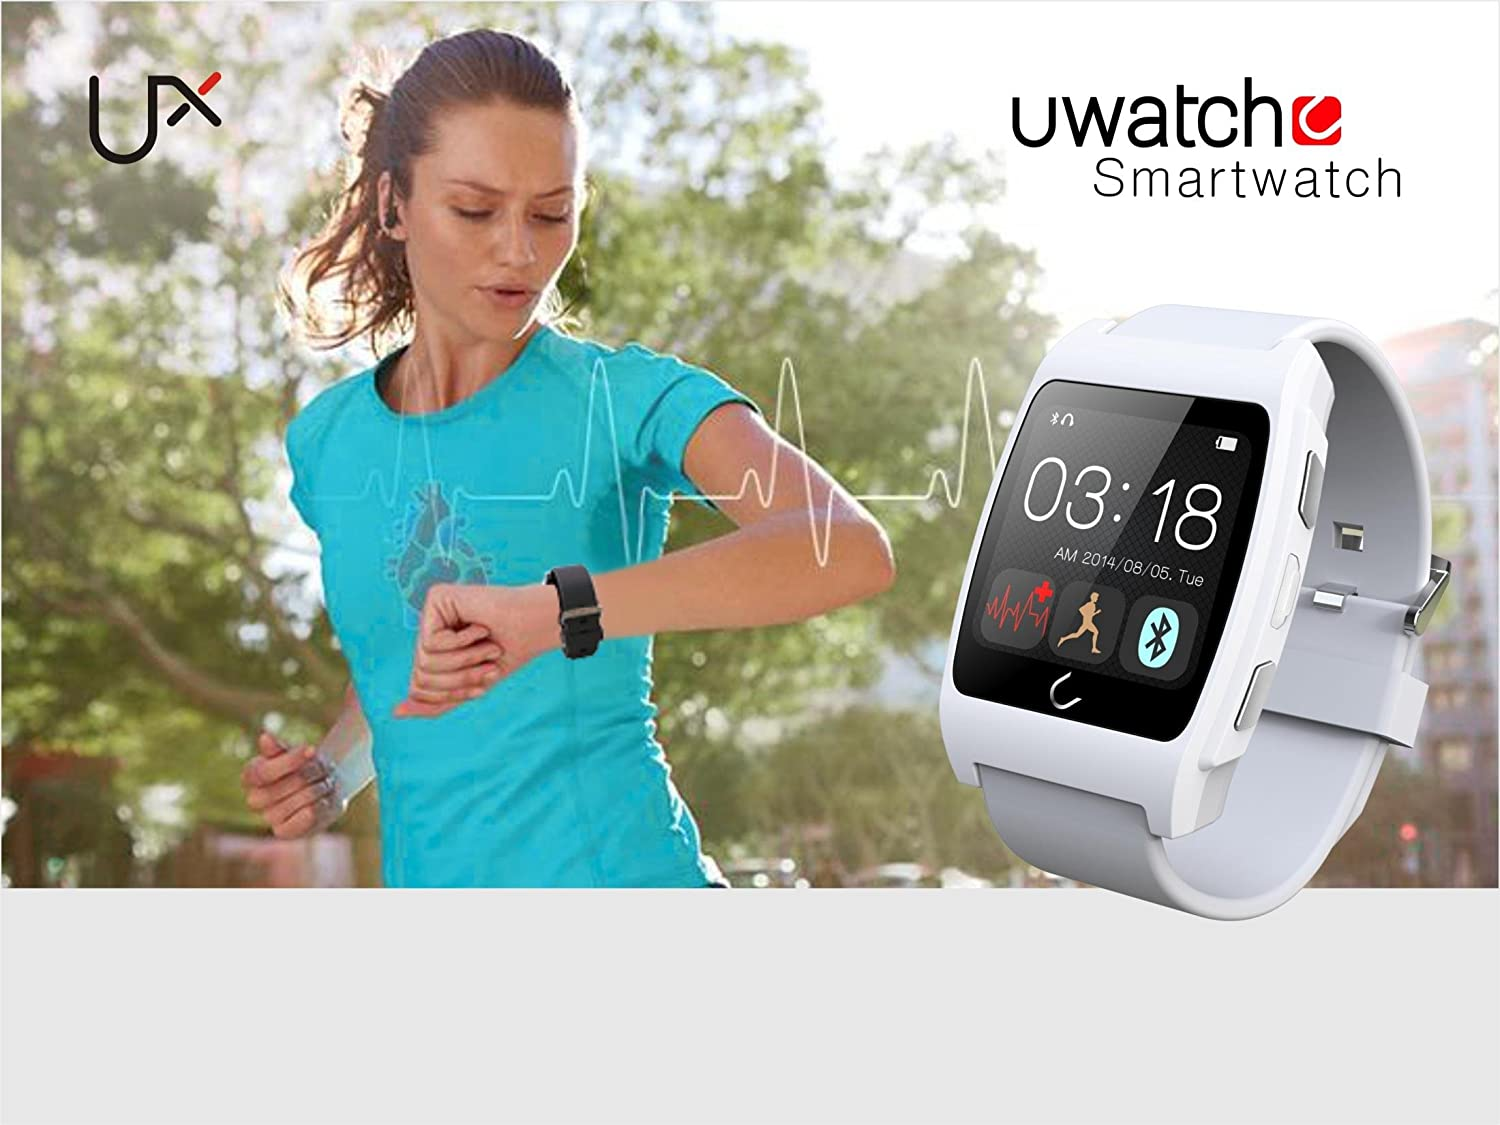 U Watch Ux Wrist Waterproof For Iphone 6 Plus 5s 4s Wime Apple Samsung S5 S6 Note 4 Htc Android Phone Smart White Cell Phones Accessories